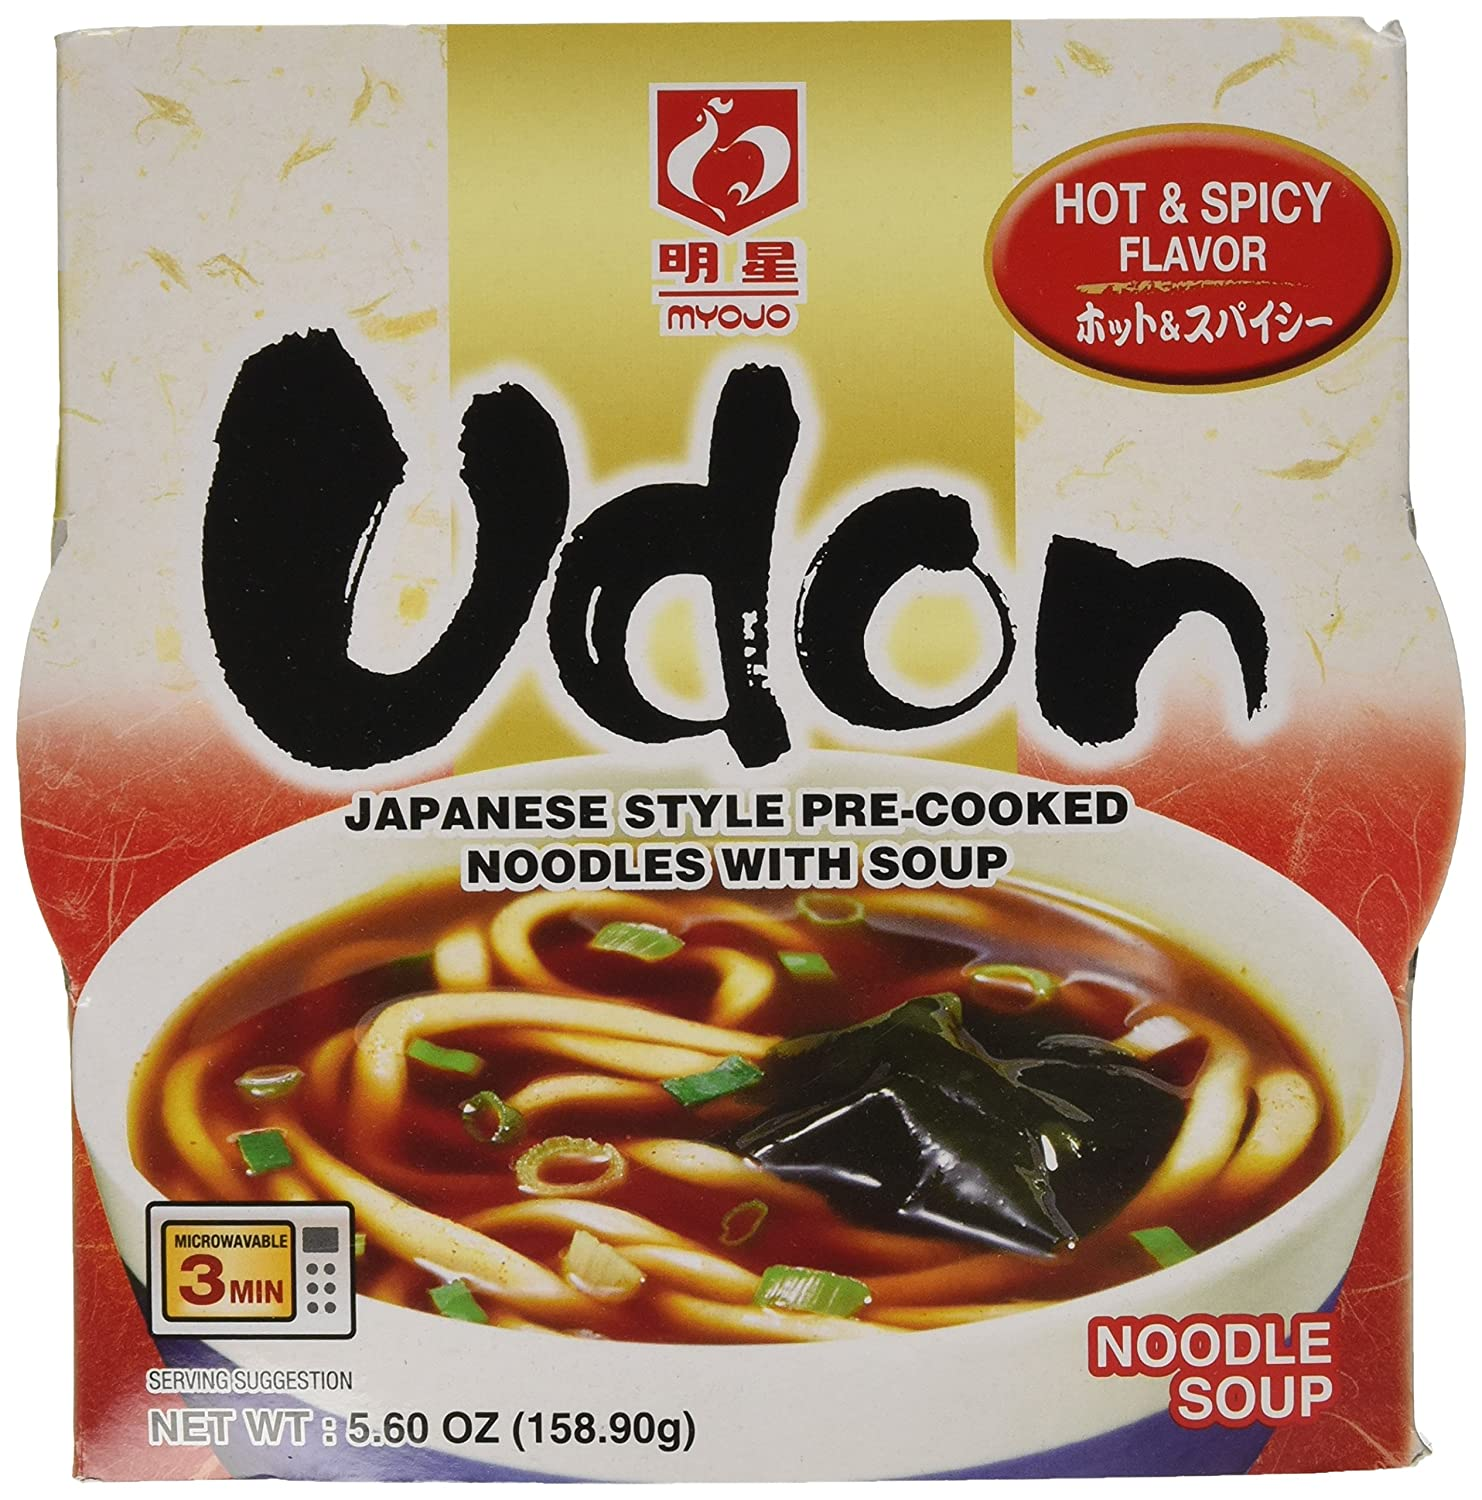 Myojo Bowl Beauty products Flavored Udon Noodles Hot of Pack Spicy Oz 5.60 Max 56% OFF and